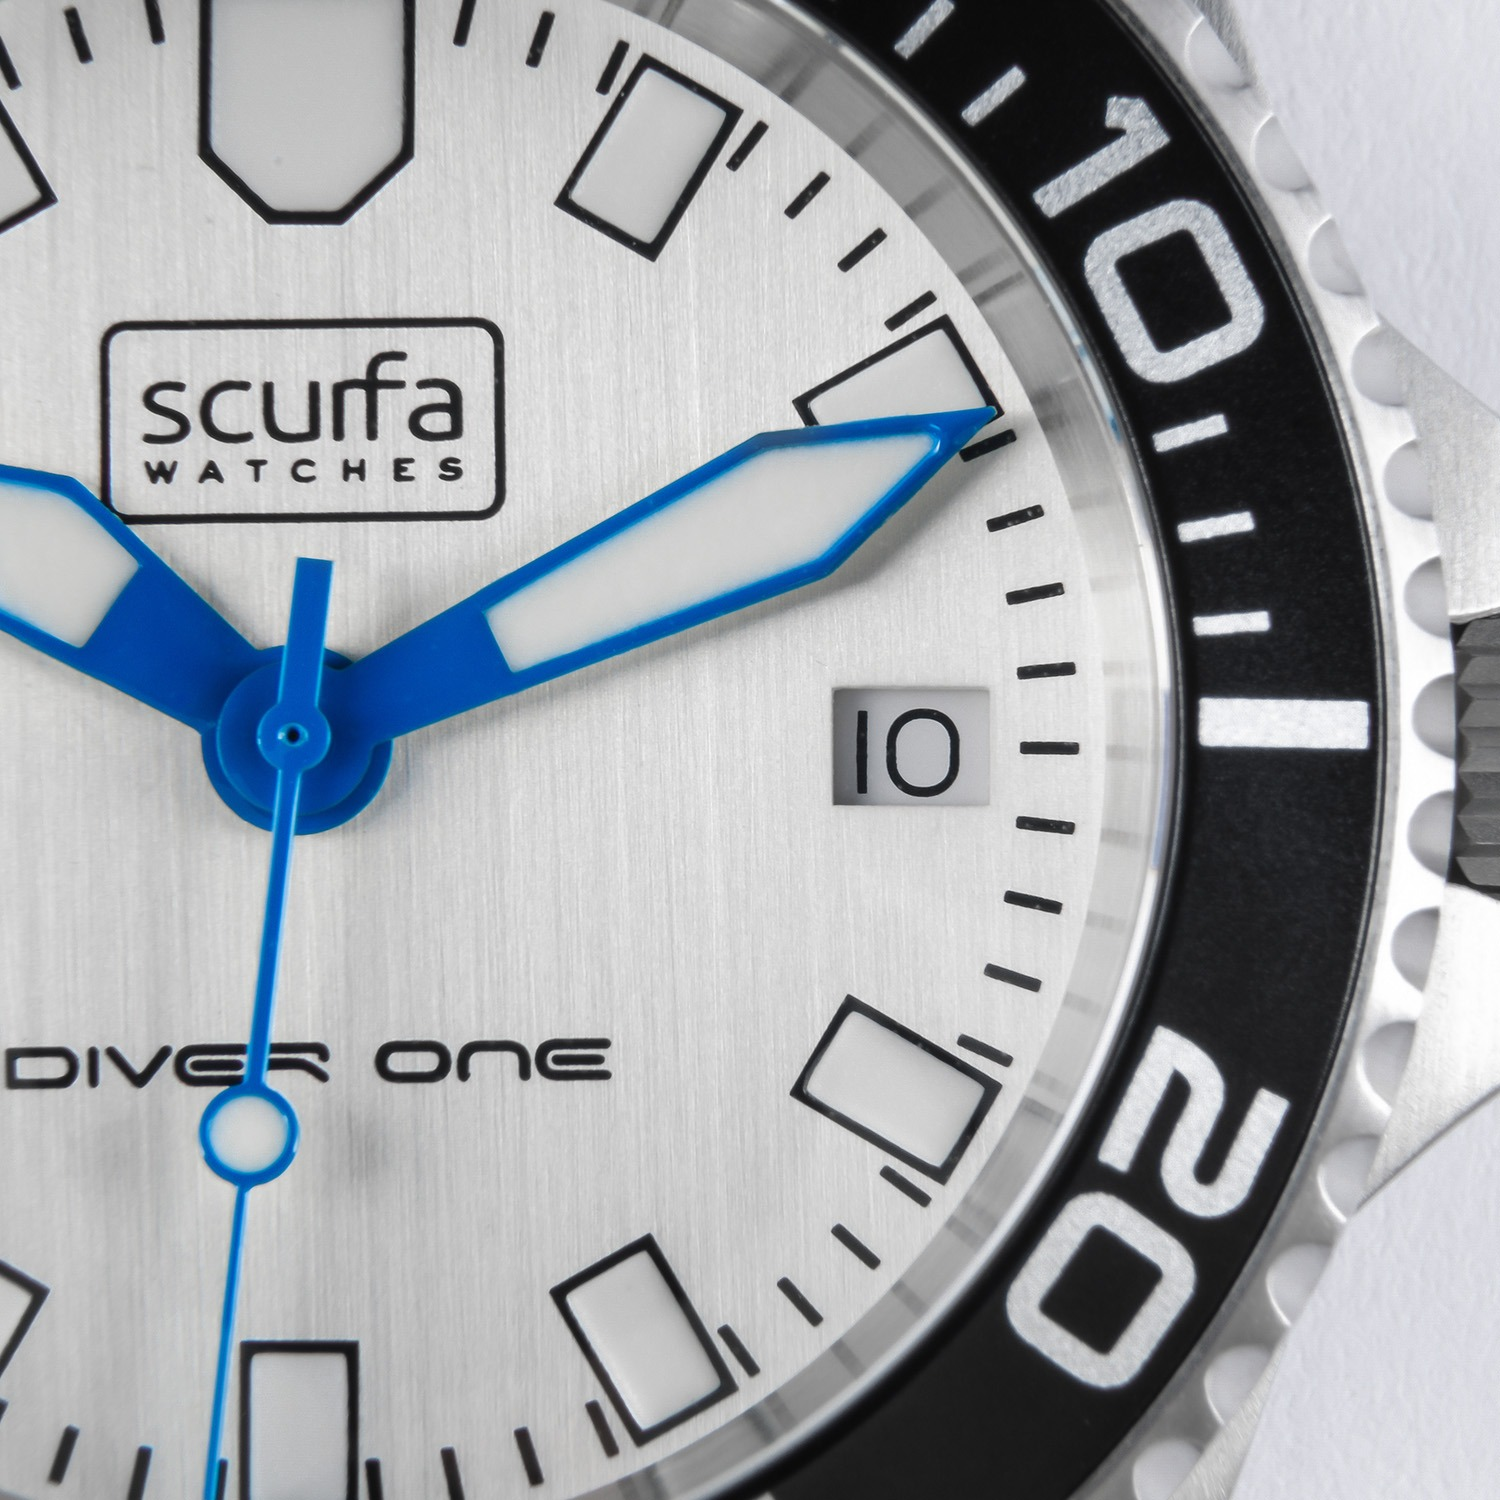 Diver One D1 500 Silver Scurfa 03